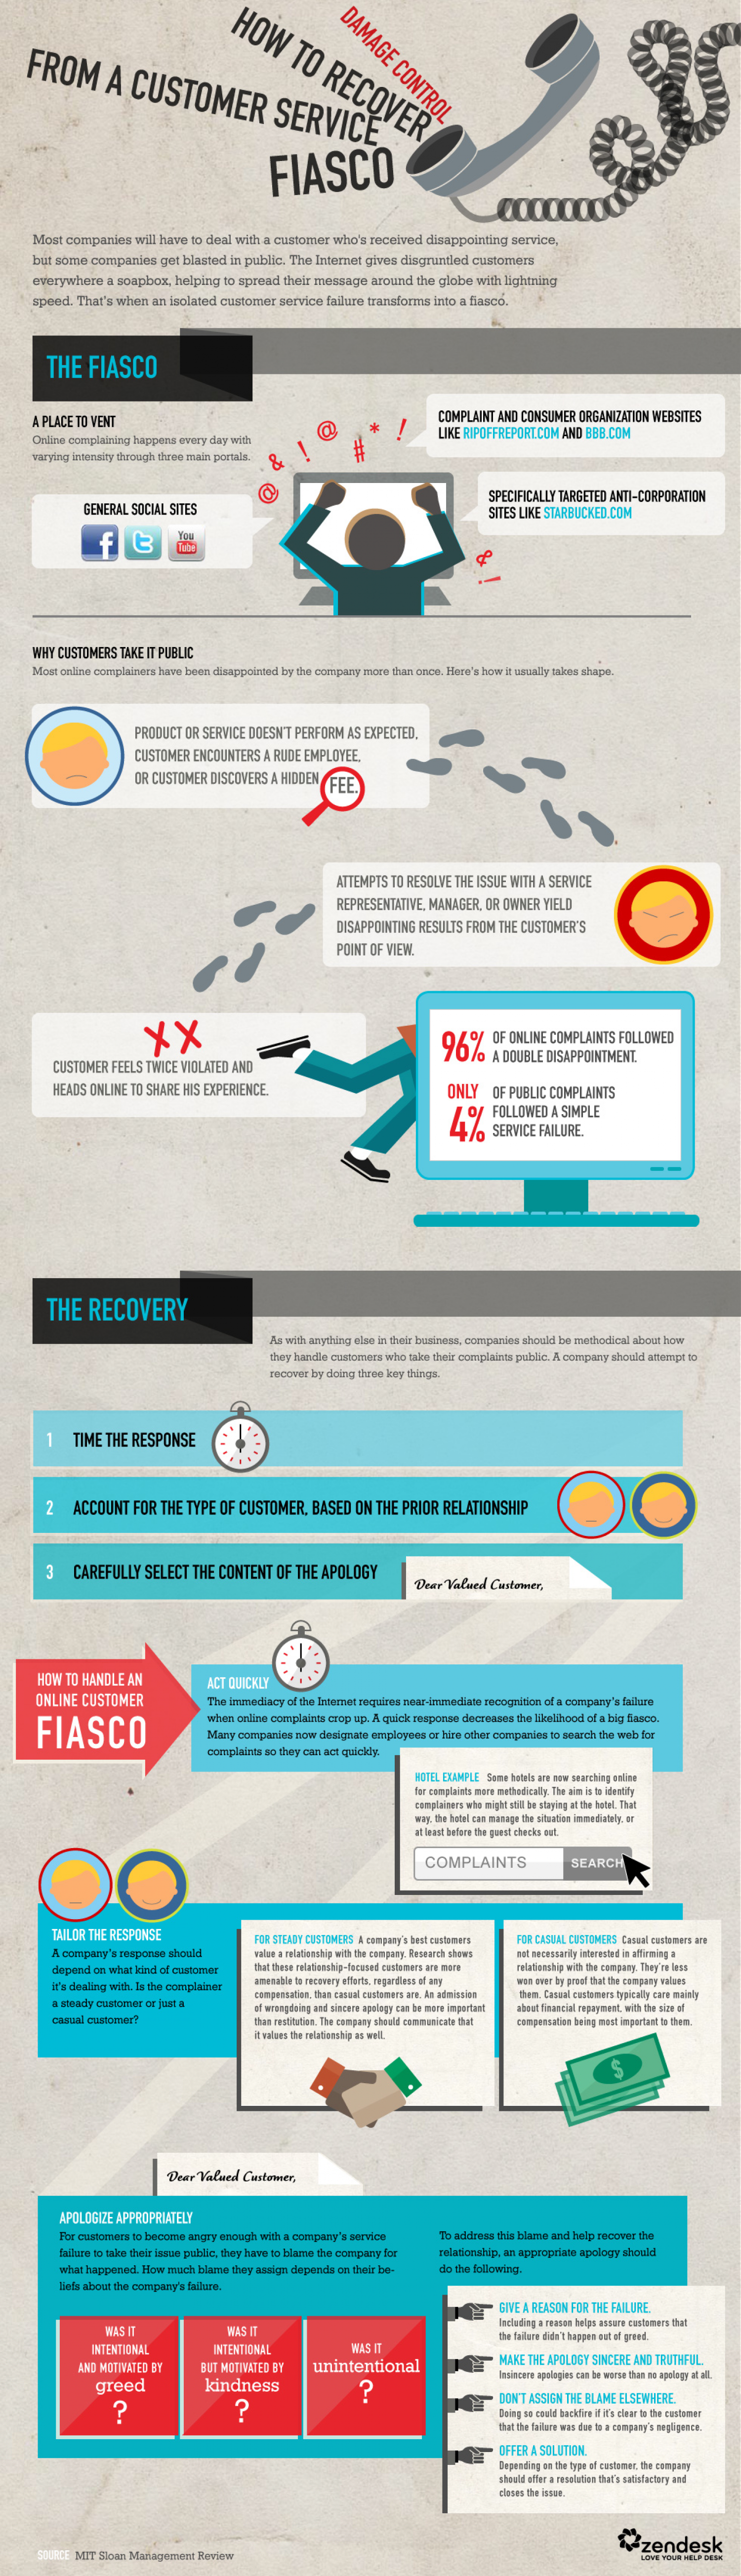 How to Avoid an Online Customer Service Fiasco  Infographic